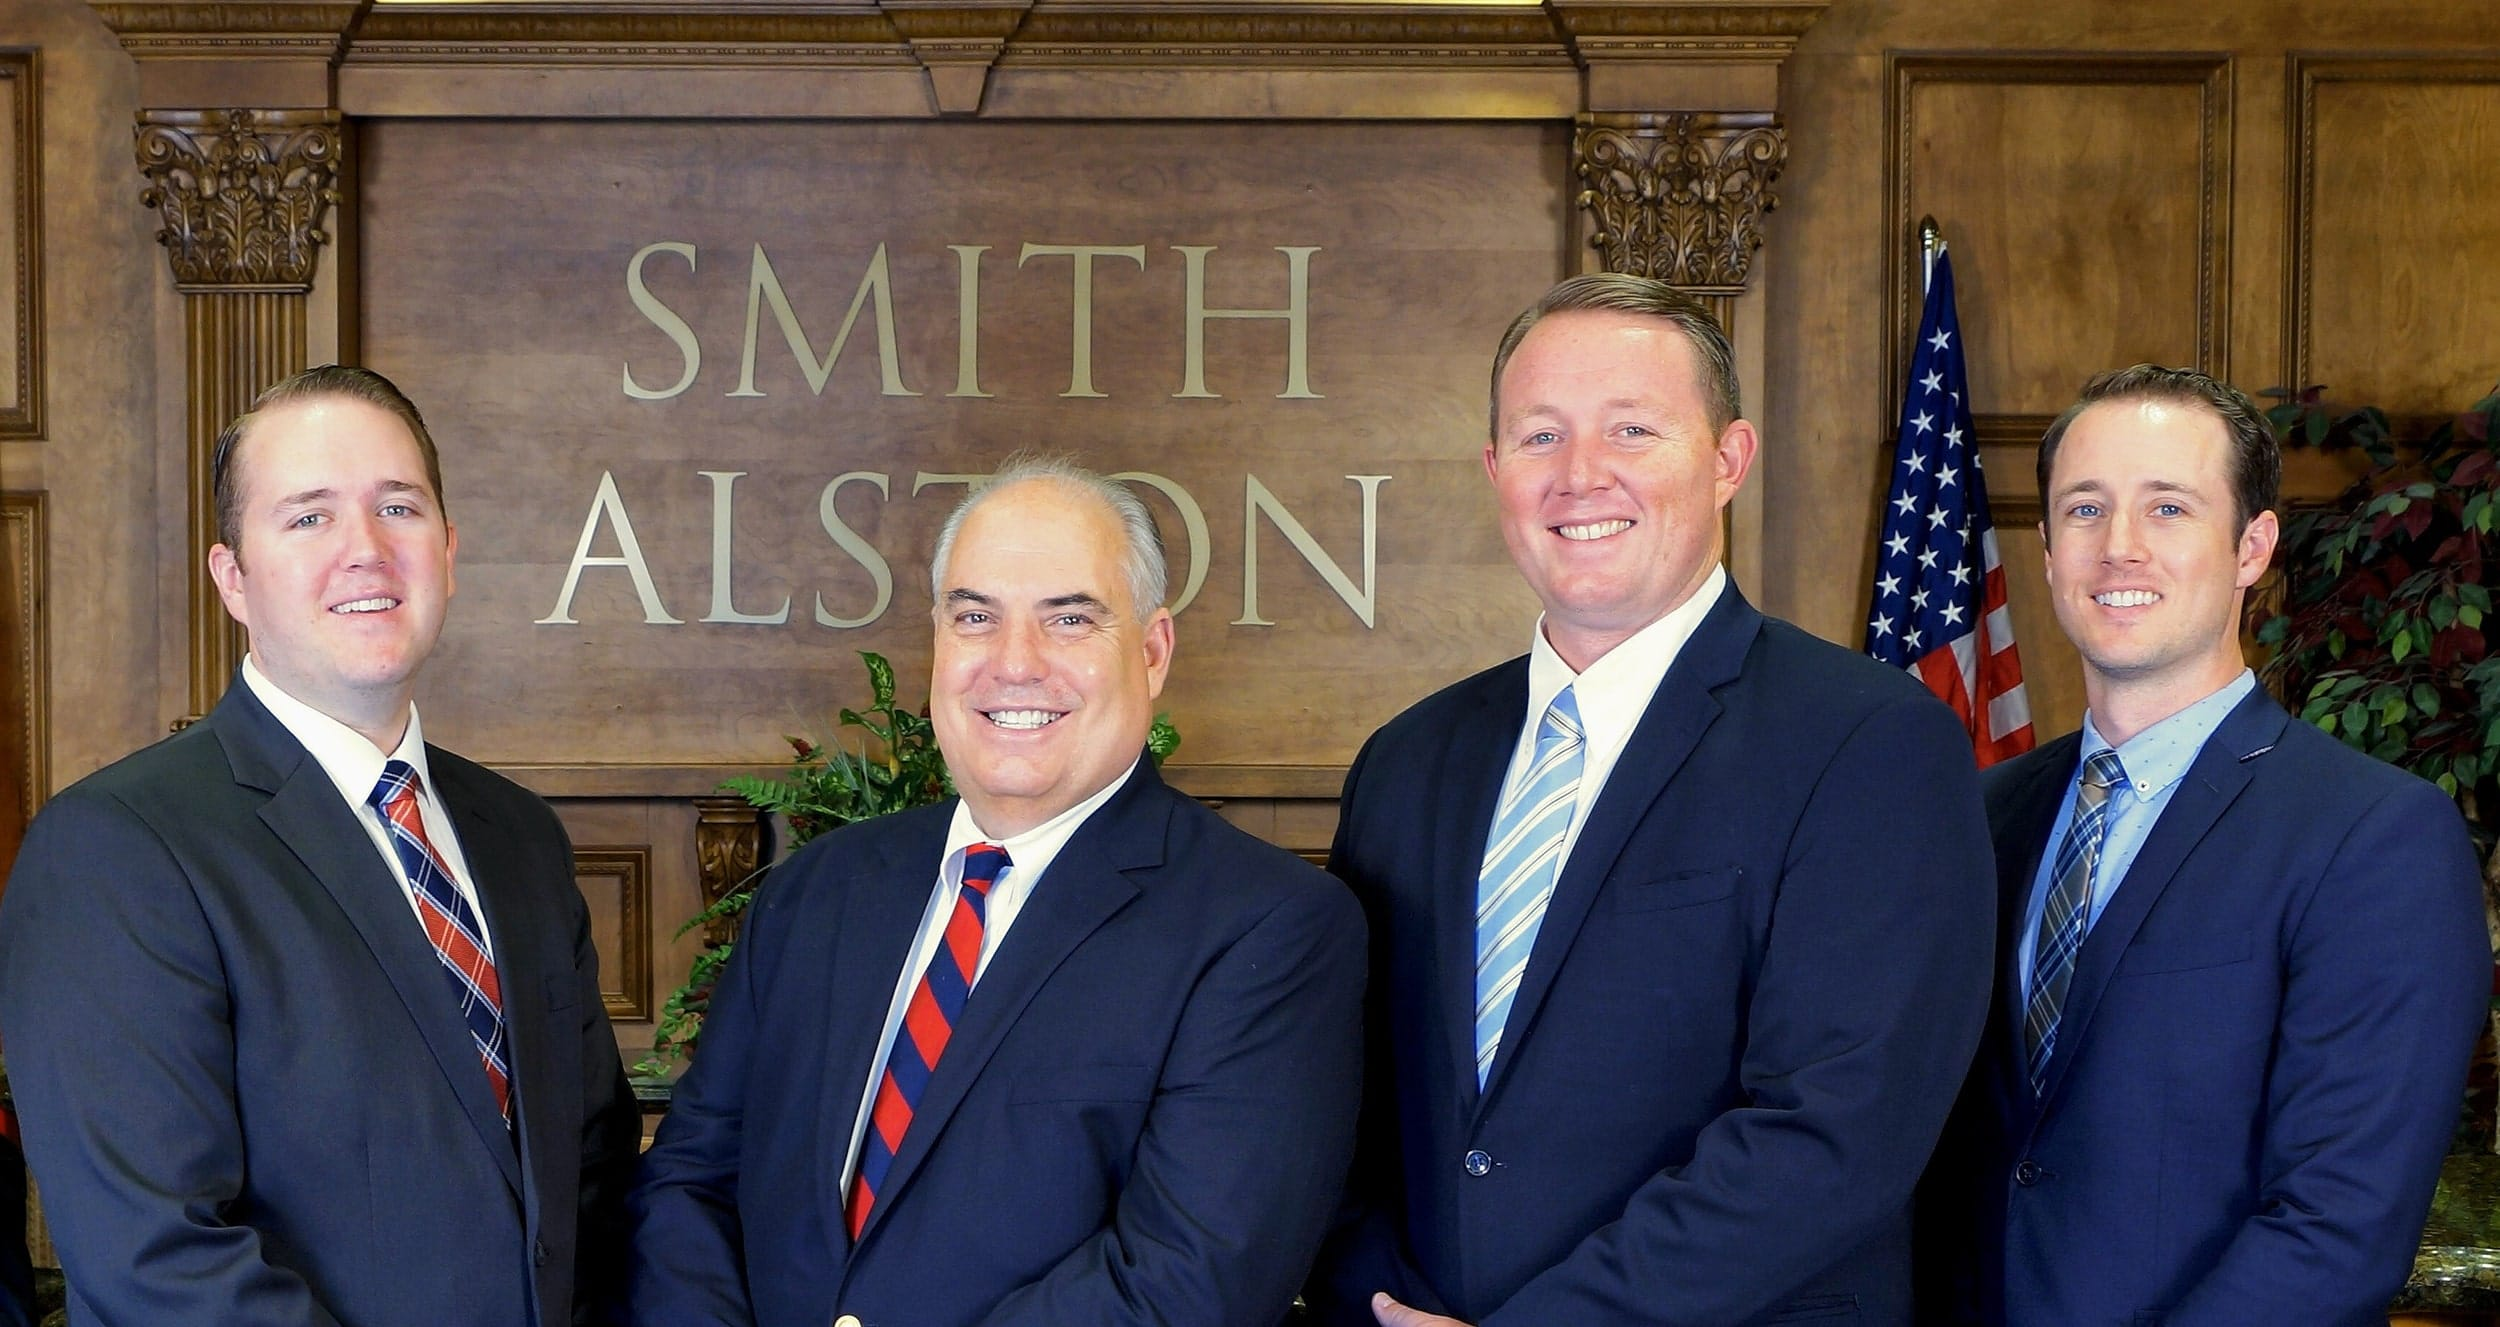 The entire team of the Smith Alston law firm